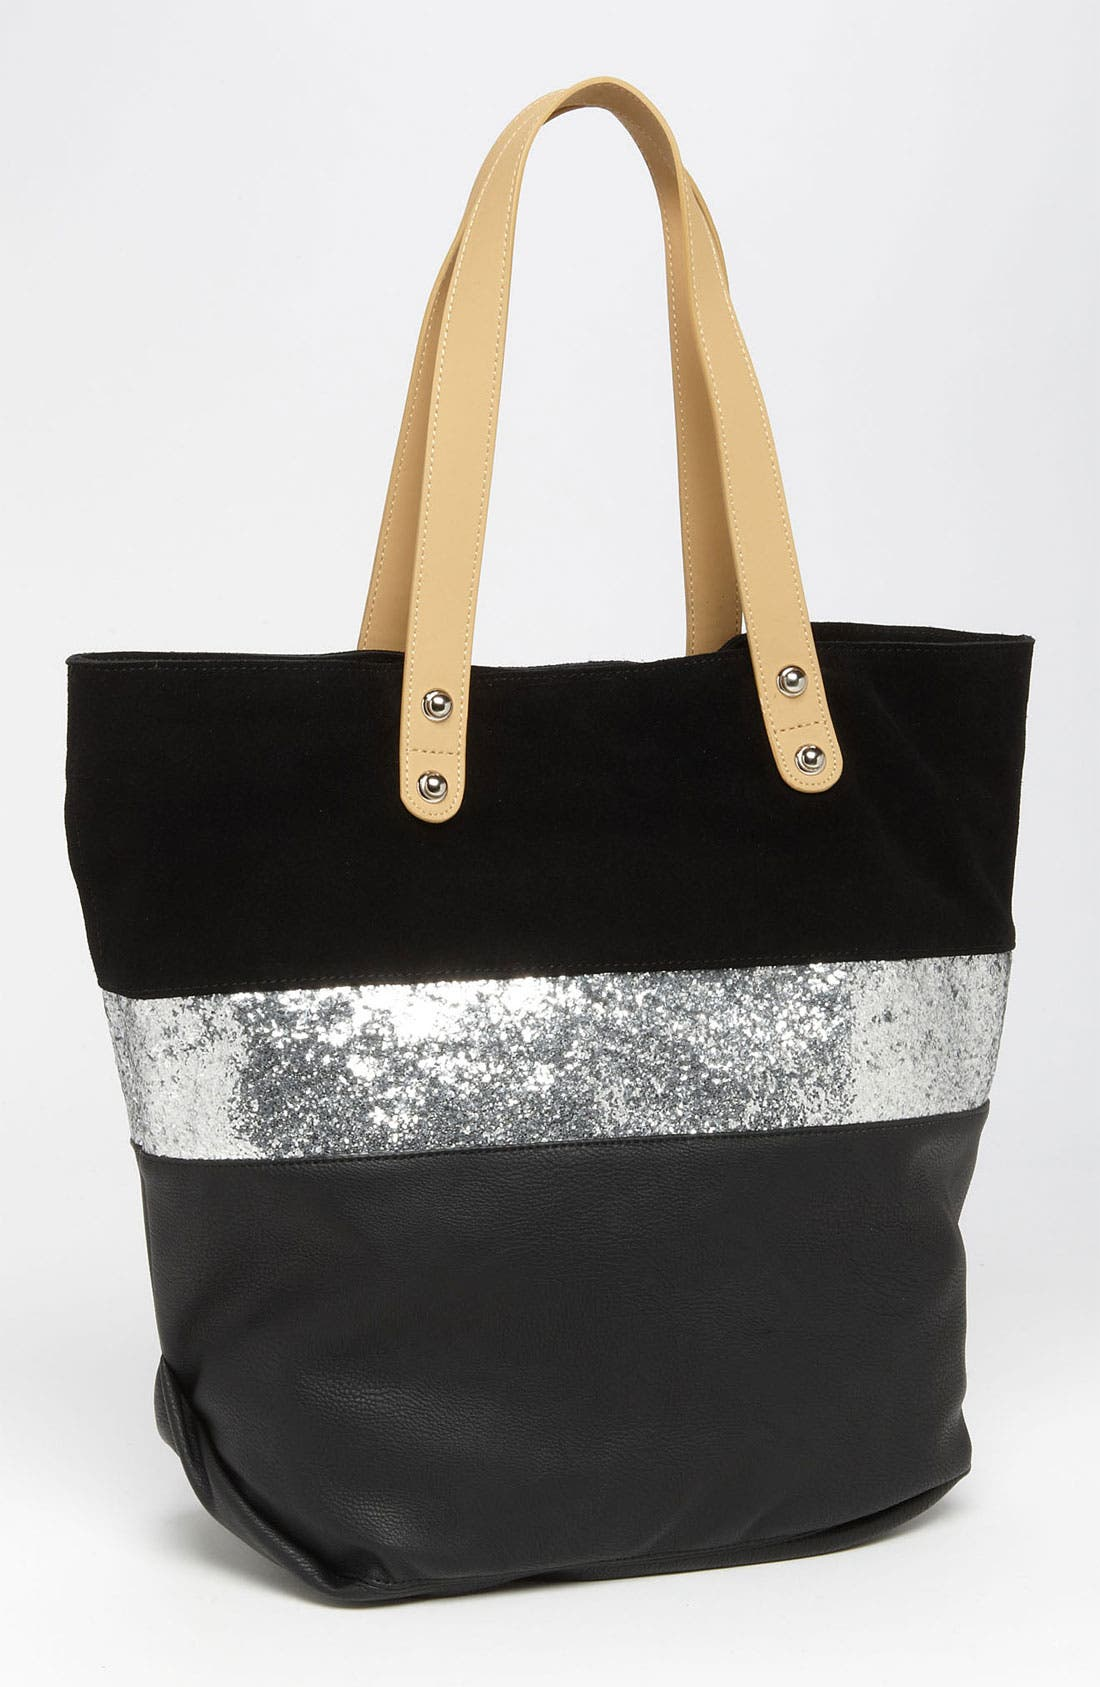 Alternate Image 1 Selected - Steve Madden 'All That Glitters' Tote